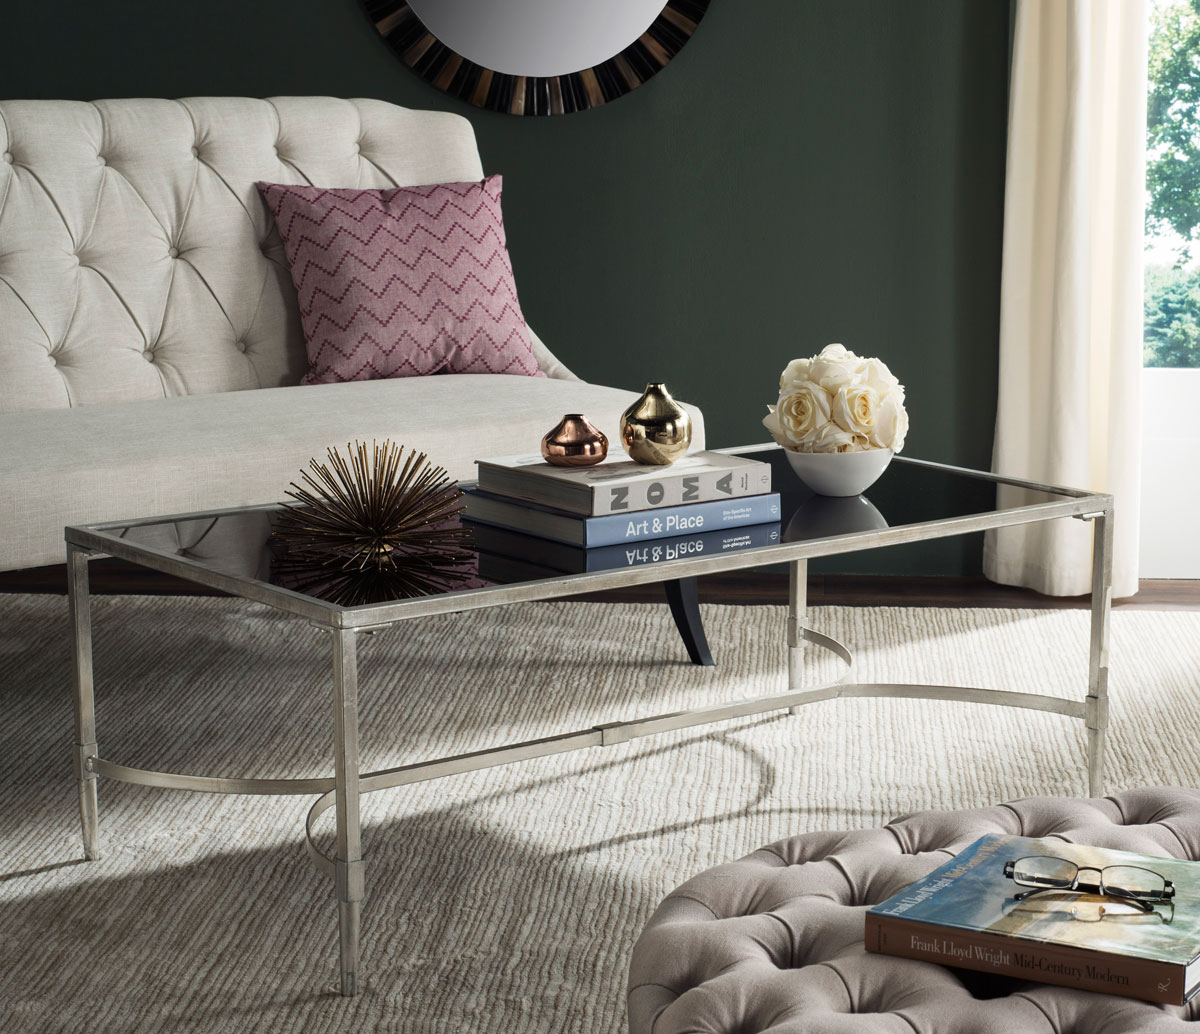 fabulous 1312 tea table living room furniture tempered glass | FOX2547B Coffee Tables - Furniture by Safavieh